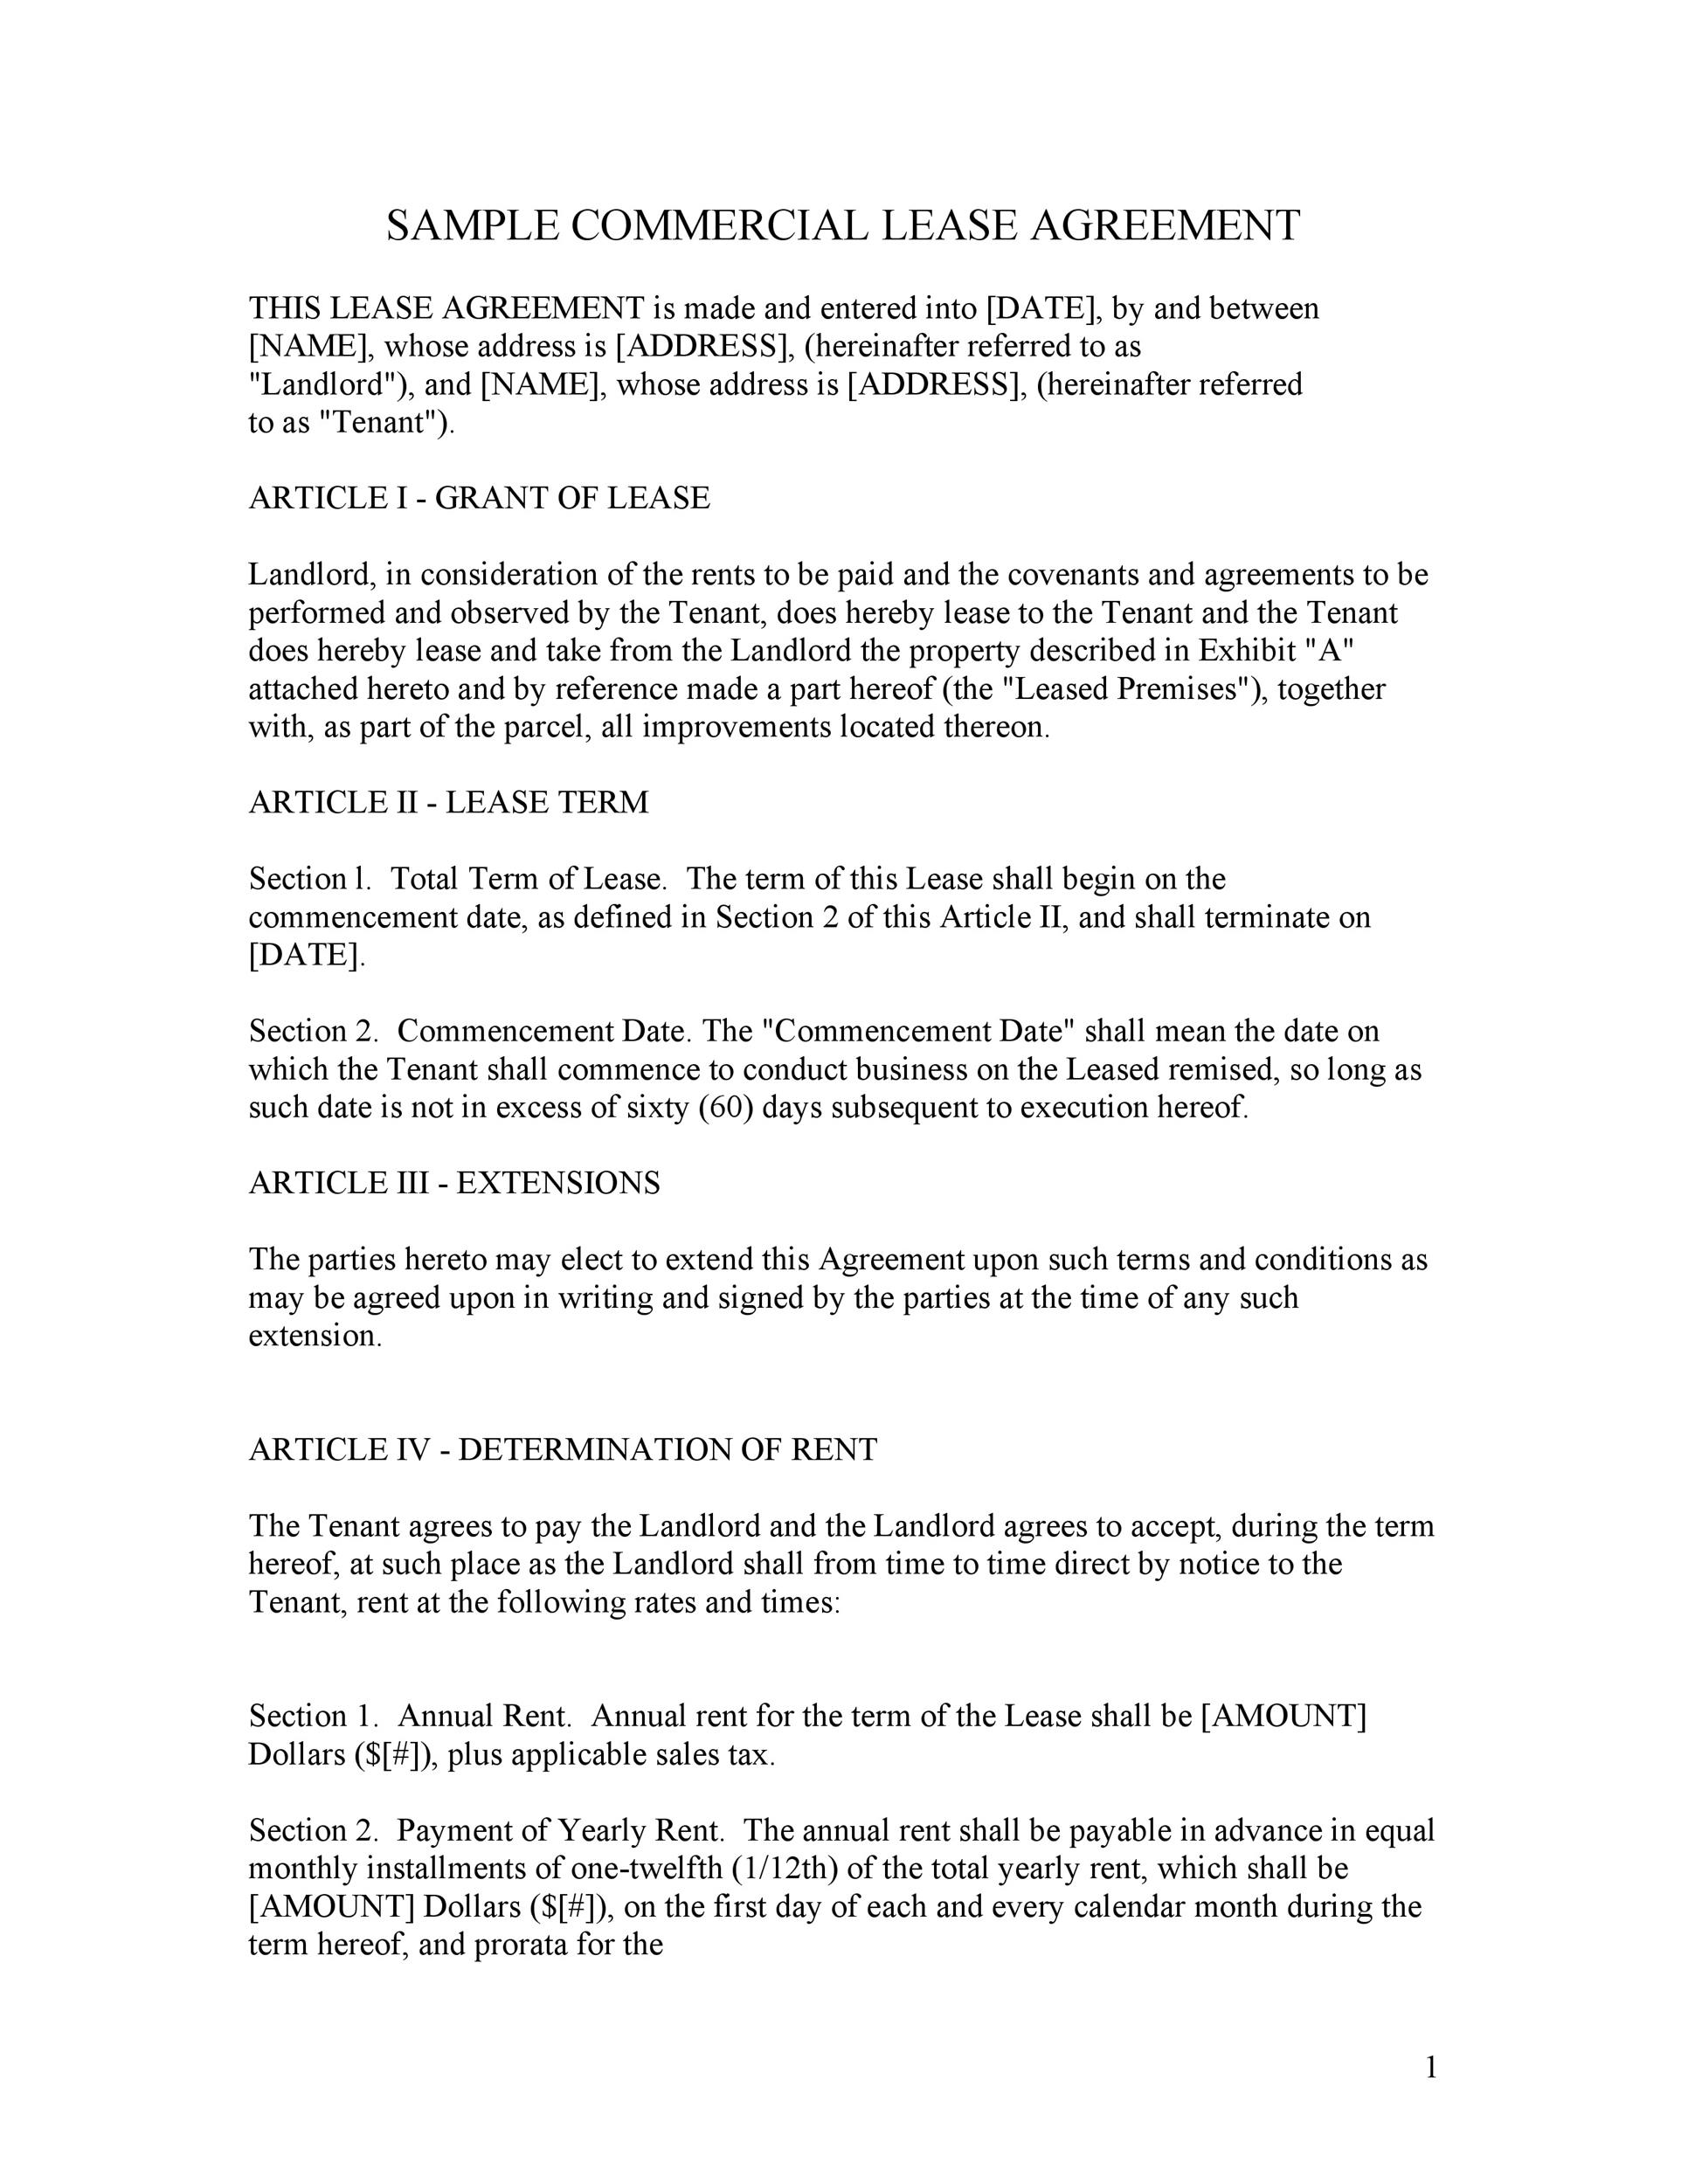 Superb Printable Commercial Lease Agreement Template 07